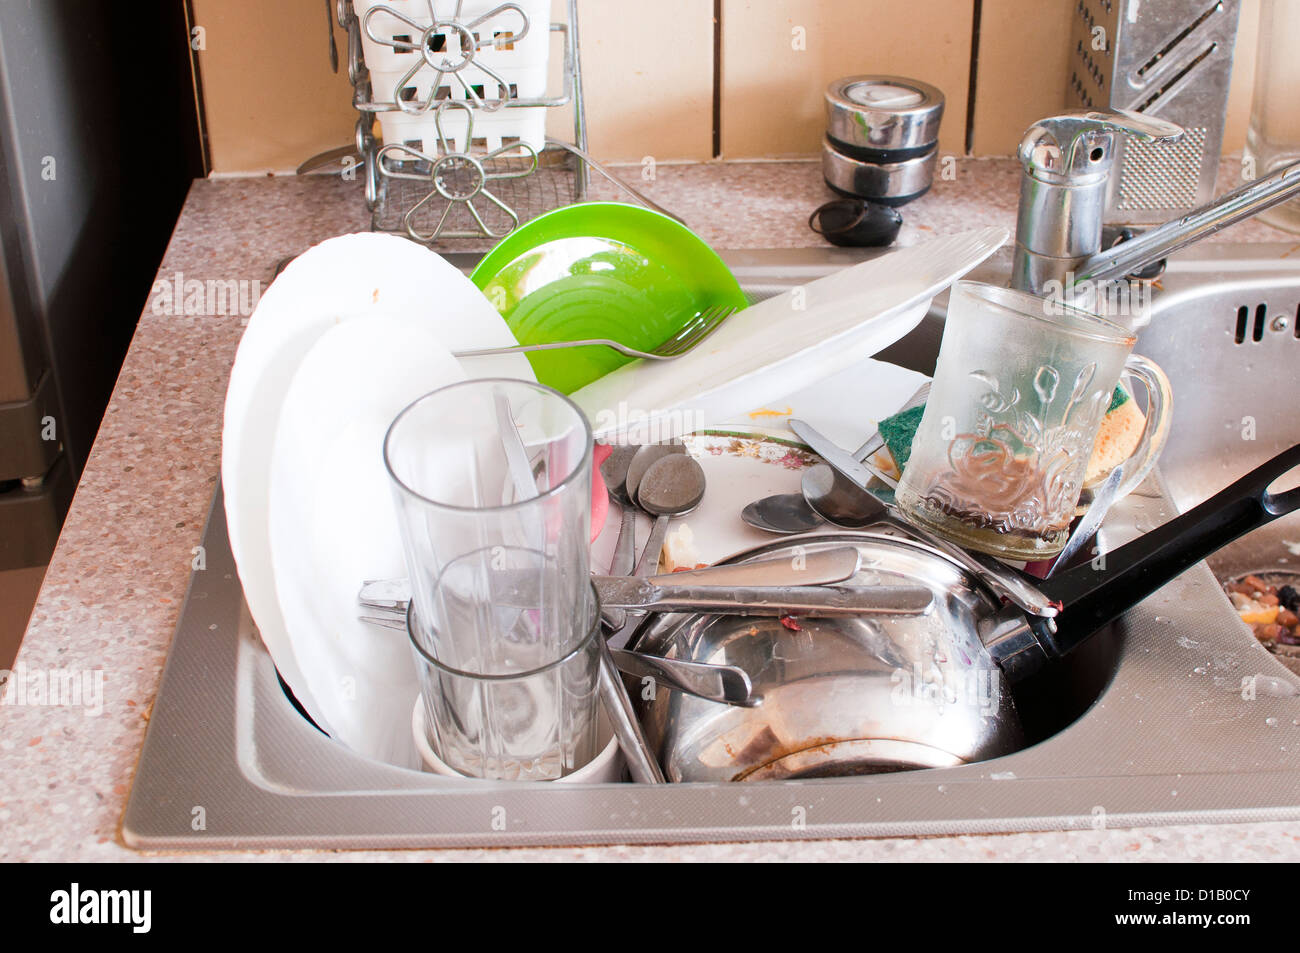 dishes in the sink - mess in the kitchen - Stock Image